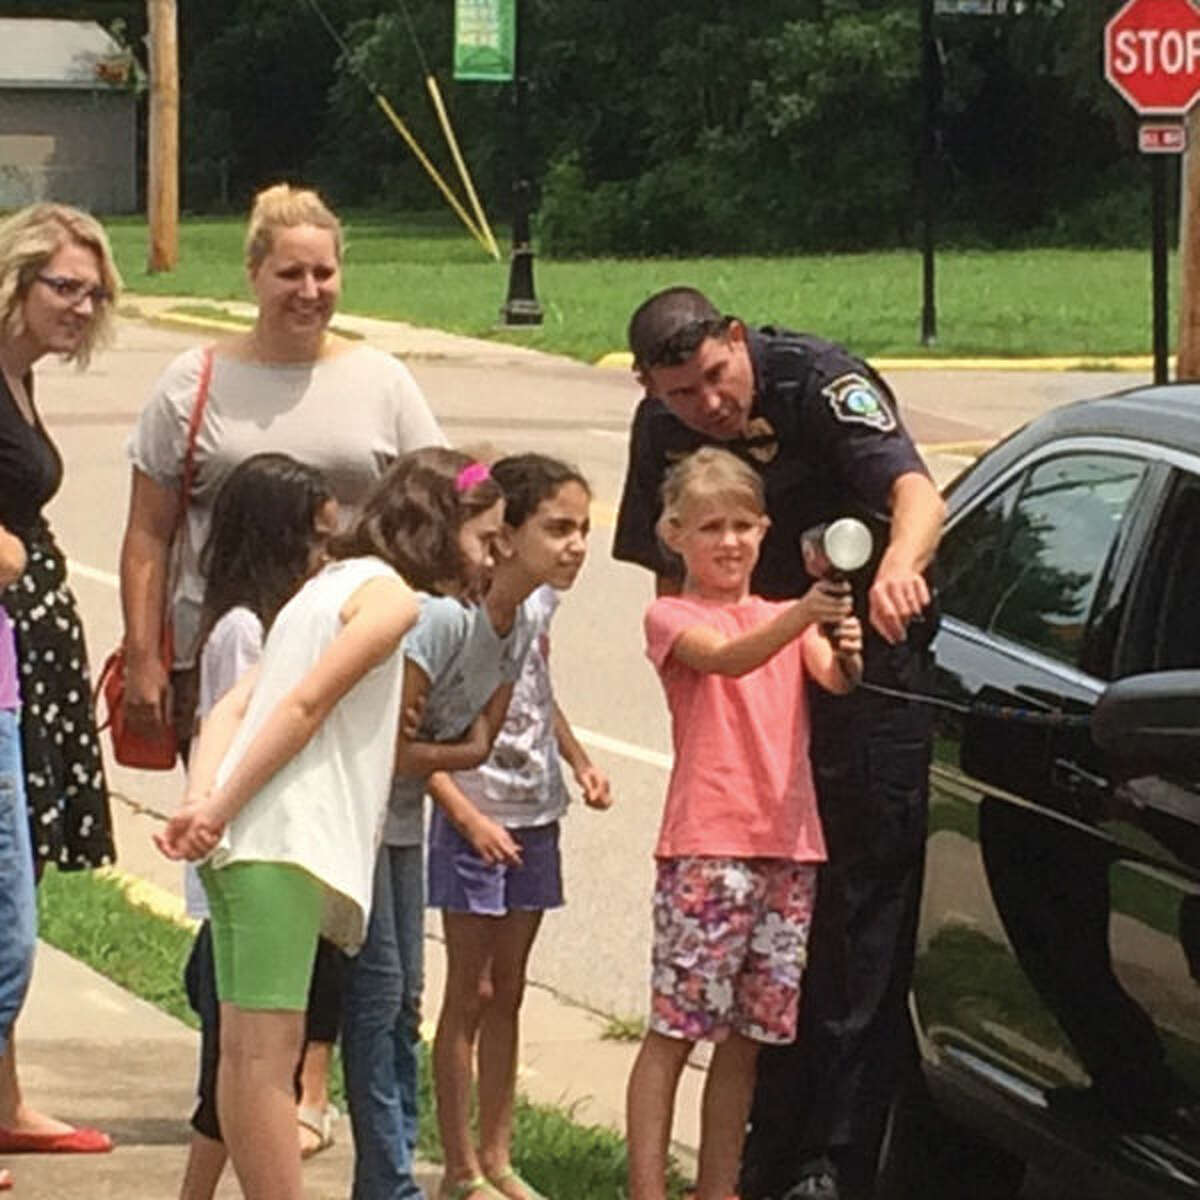 Glen Carbon Police Lt. Wayne White shows a child how to operate a radar gun. The Glen Carbon Police were at the Centennial Library teaching students how vital the role science, technology, engineering and math, STEM, are to modern day law enforcement.